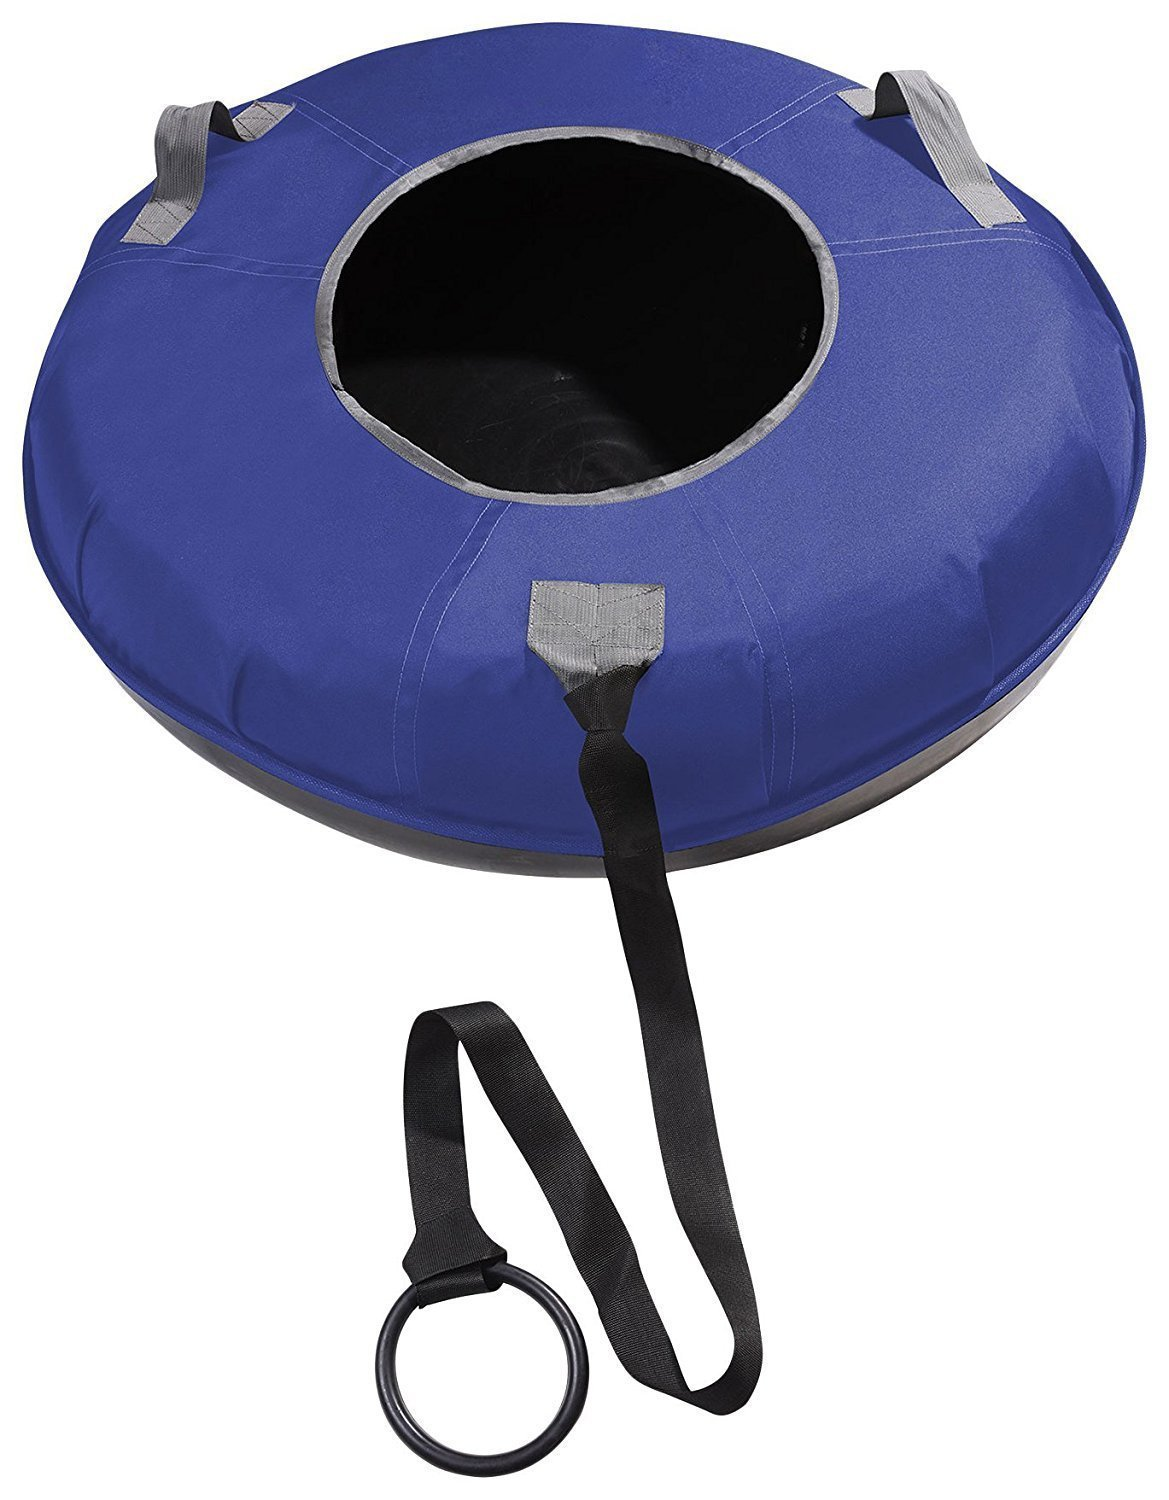 Kingmys Commercial Inflatable Snow Tube Sled by